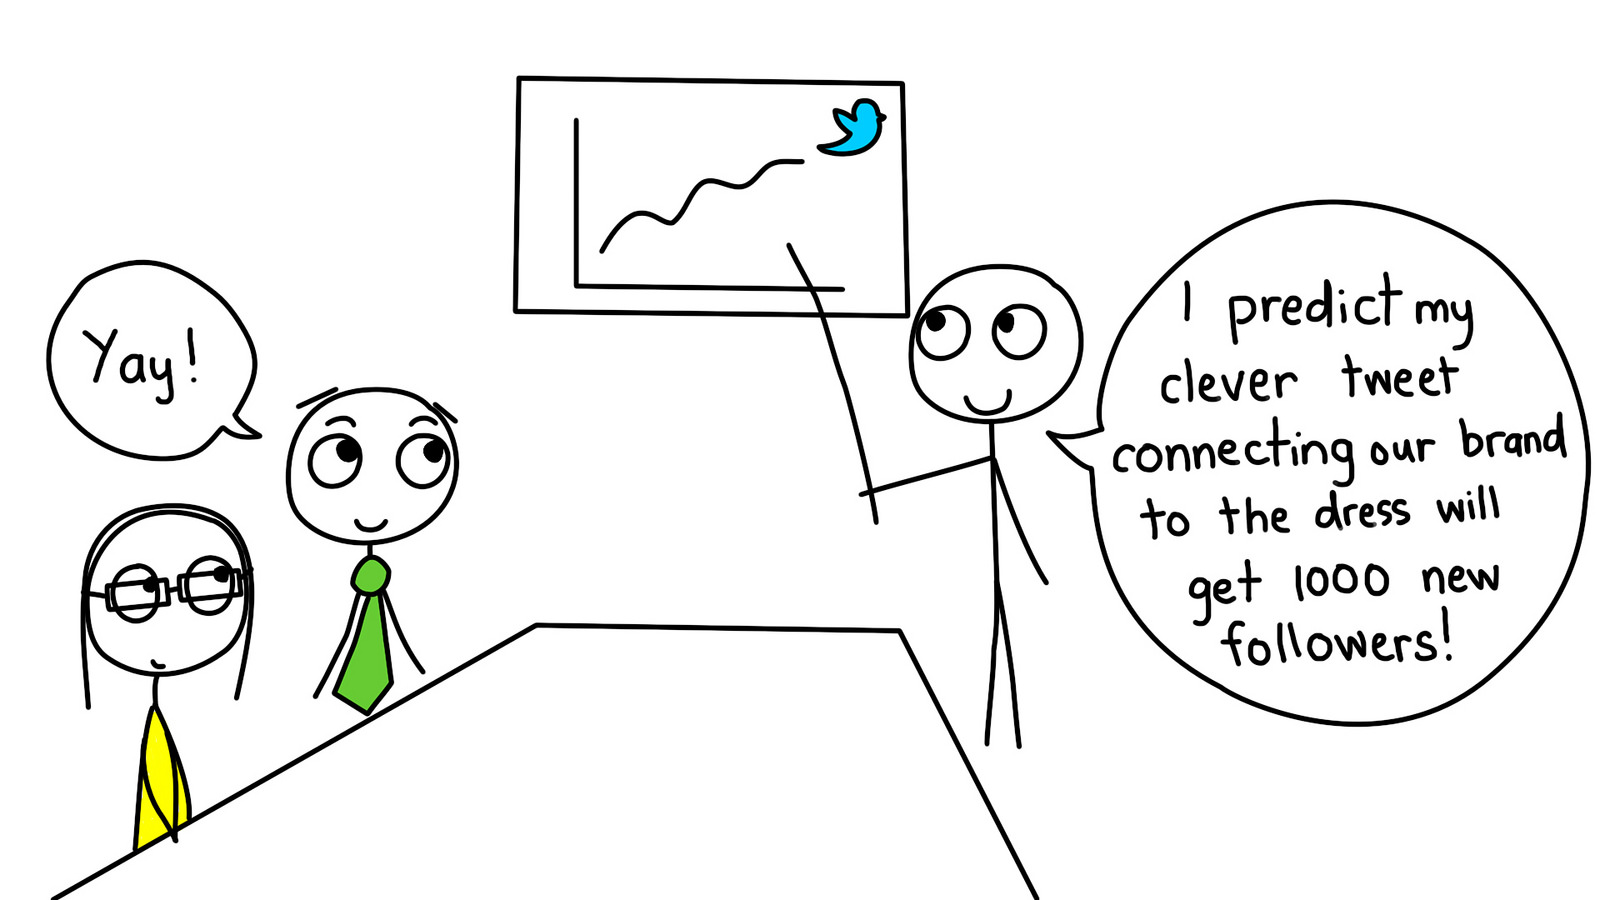 a49dac9b80a Three stick figures gathered around a chart that depicts the Twitter logo  and an upward-